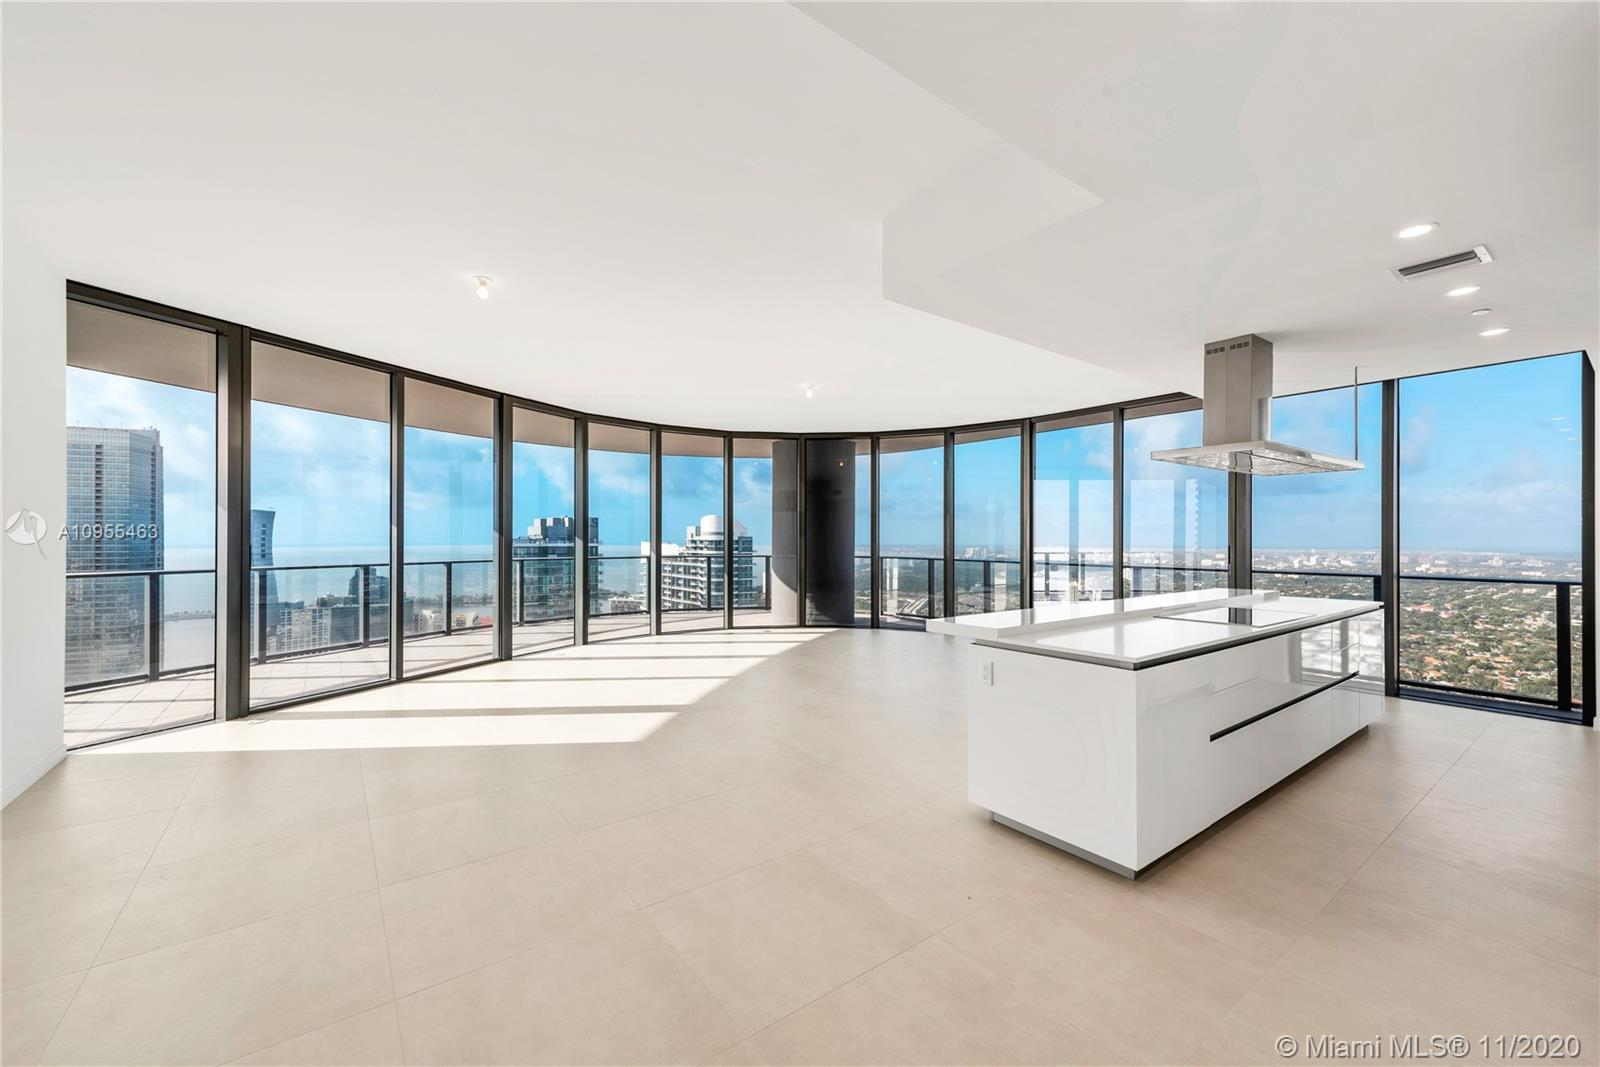 Worldclass views from this 3 Bed/3.5 Bath Lower Penthouse at Brickell Flatiron with higher ceilings.